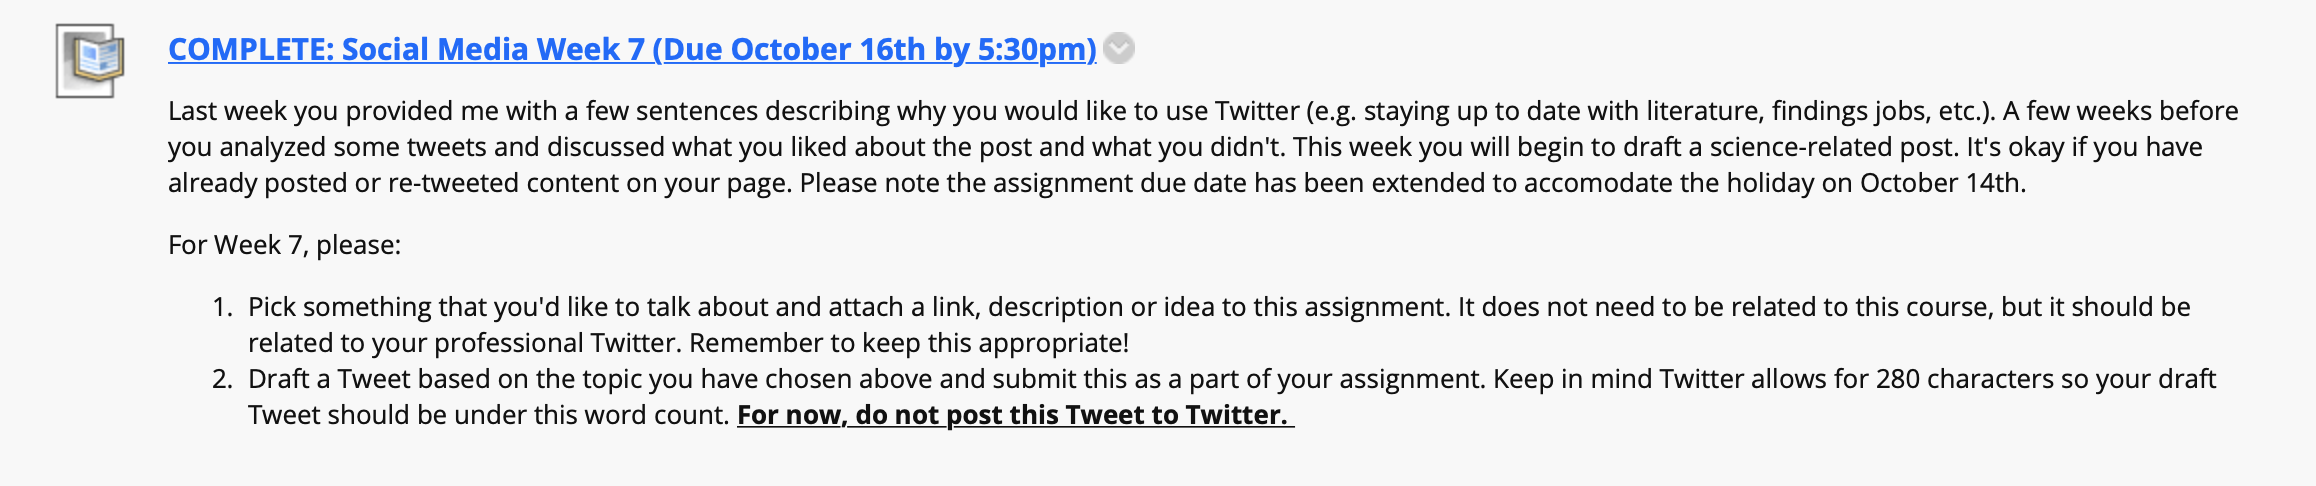 An extended screenshot from a course website that reads: Last week you provided me with a few sentences describing why you would like to use Twitter (e.g. staying up to date with literature, findings jobs, etc.). A few weeks before you analyzed some tweets and discussed what you liked about the post and what you didn't. This week you will begin to draft a science-related post. It's okay if you have already posted or re-tweeted content on your page. Please note the assignment due date has been extended to accommodate the holiday on October 14th.  For Week 7, please:  Pick something that you'd like to talk about and attach a link, description or idea to this assignment. It does not need to be related to this course, but it should be related to your professional Twitter. Remember to keep this appropriate! Draft a Tweet based on the topic you have chosen above and submit this as a part of your assignment. Keep in mind Twitter allows for 280 characters so your draft Tweet should be under this word count. For now, do not post this Tweet to Twitter.